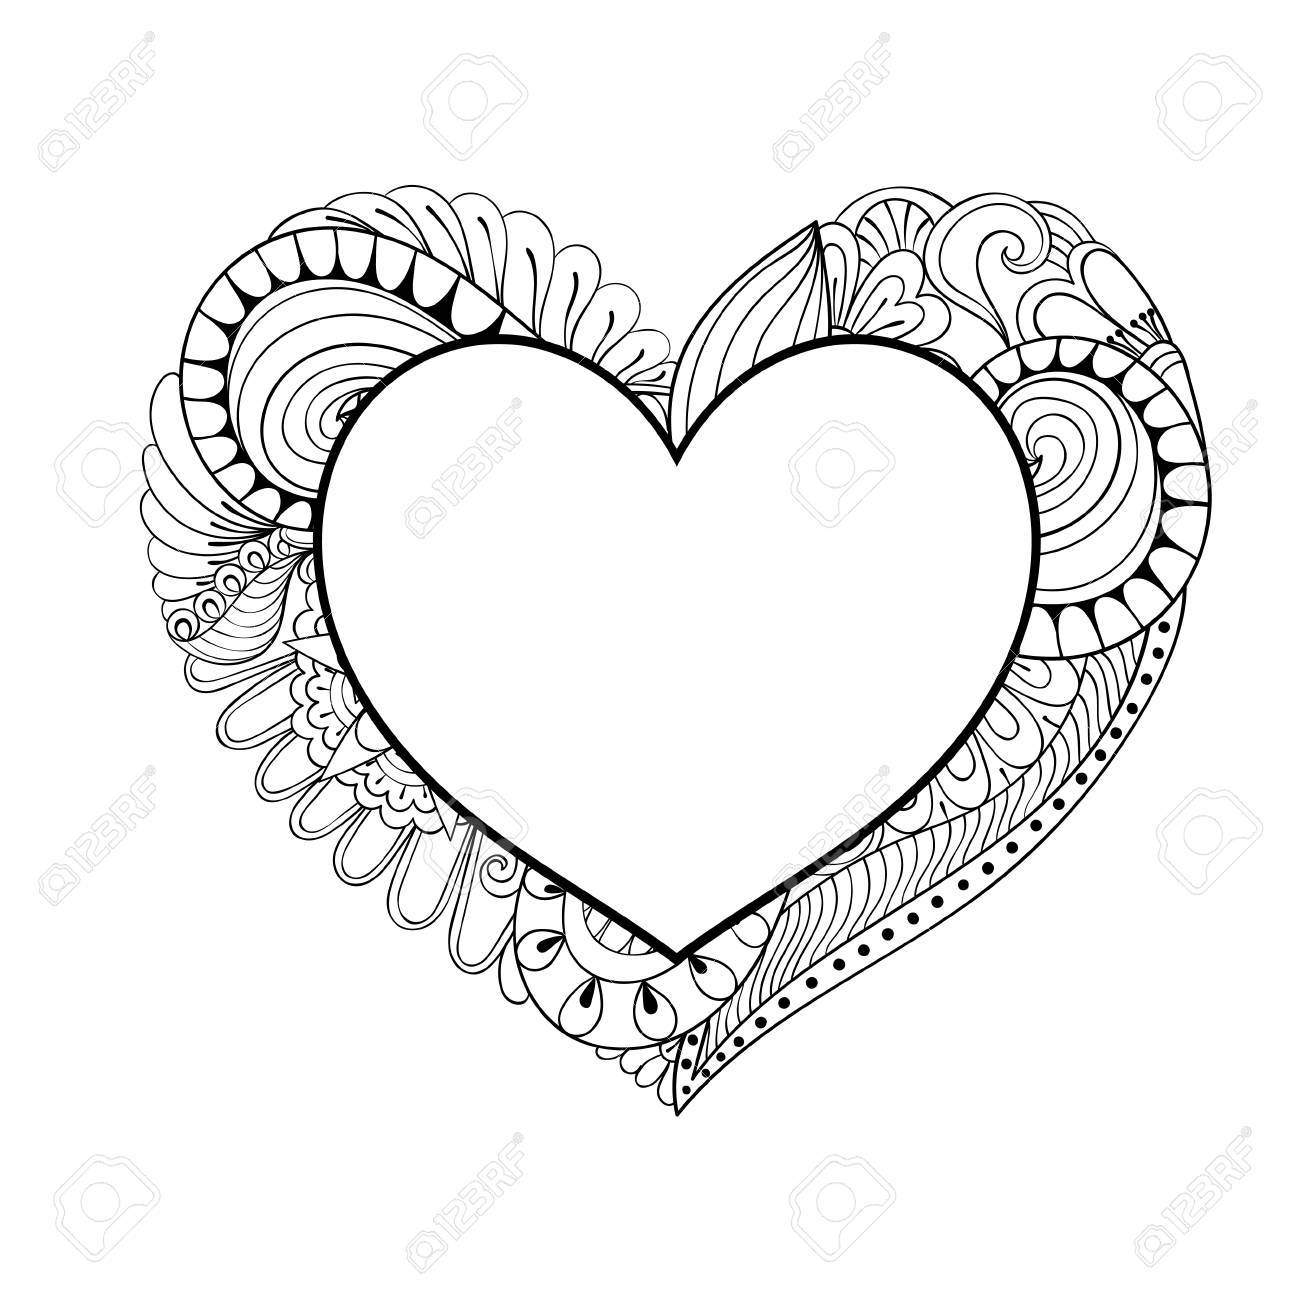 Floral Doodle Heart Frame In Zentangle Style For Adult Coloring ...